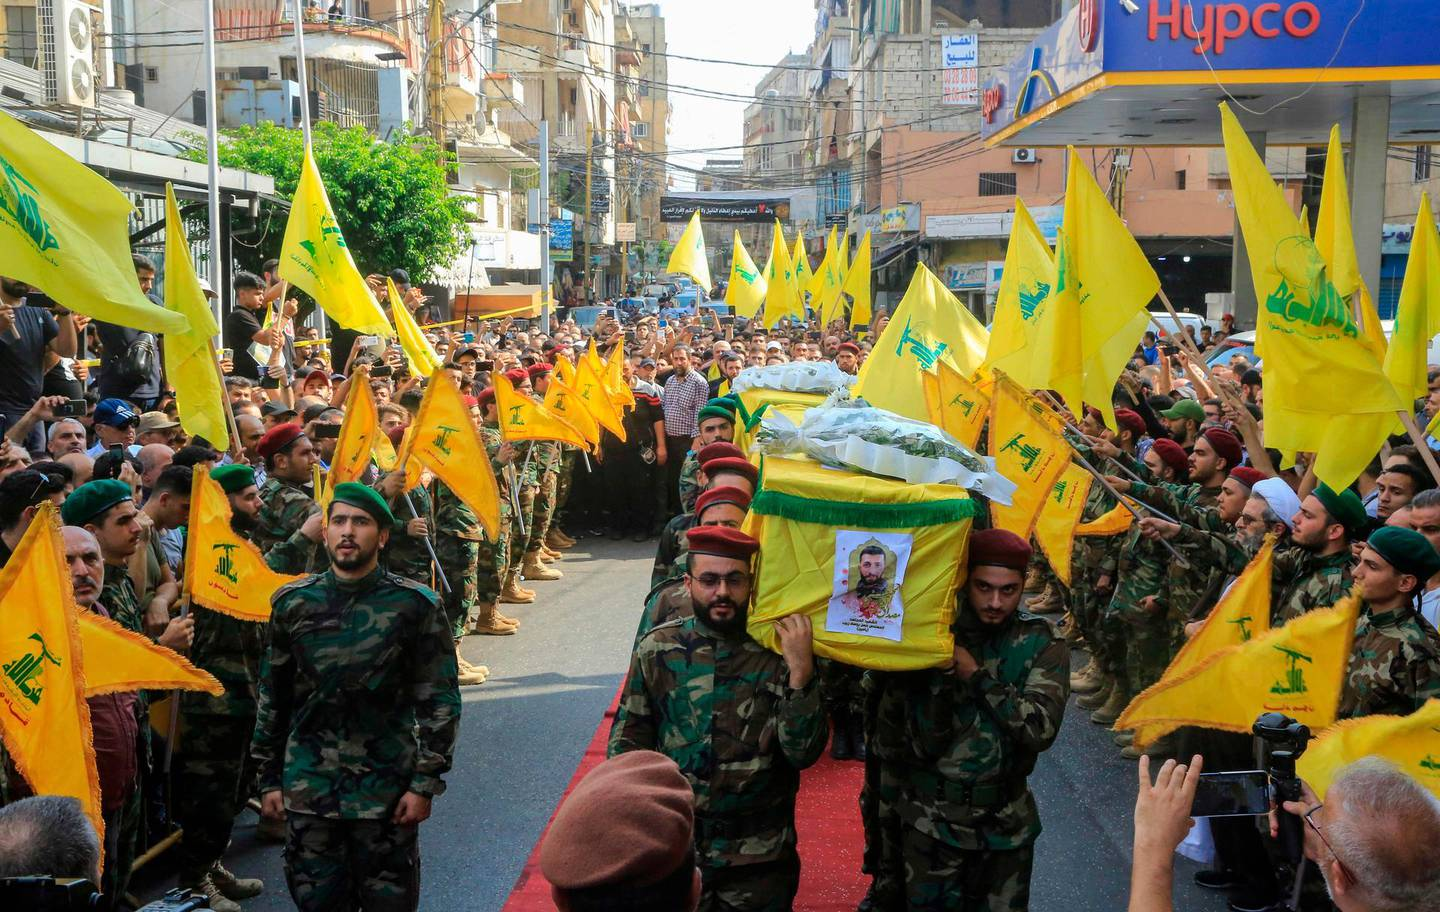 Members of Lebanon's Shiite Hezbollah movement carry the coffin of their fellow comrades, who were killed in Israeli strikes in Syria, during the funeral in the Ghobeiry neighbourhood of southern Beirut on August 26, 2019. The head of Hezbollah Hassan Nasrallah said on August 25 that Israeli strikes overnight in Syria had hit a position used by his Lebanese Shiite group, killing two of its members.  / AFP / -